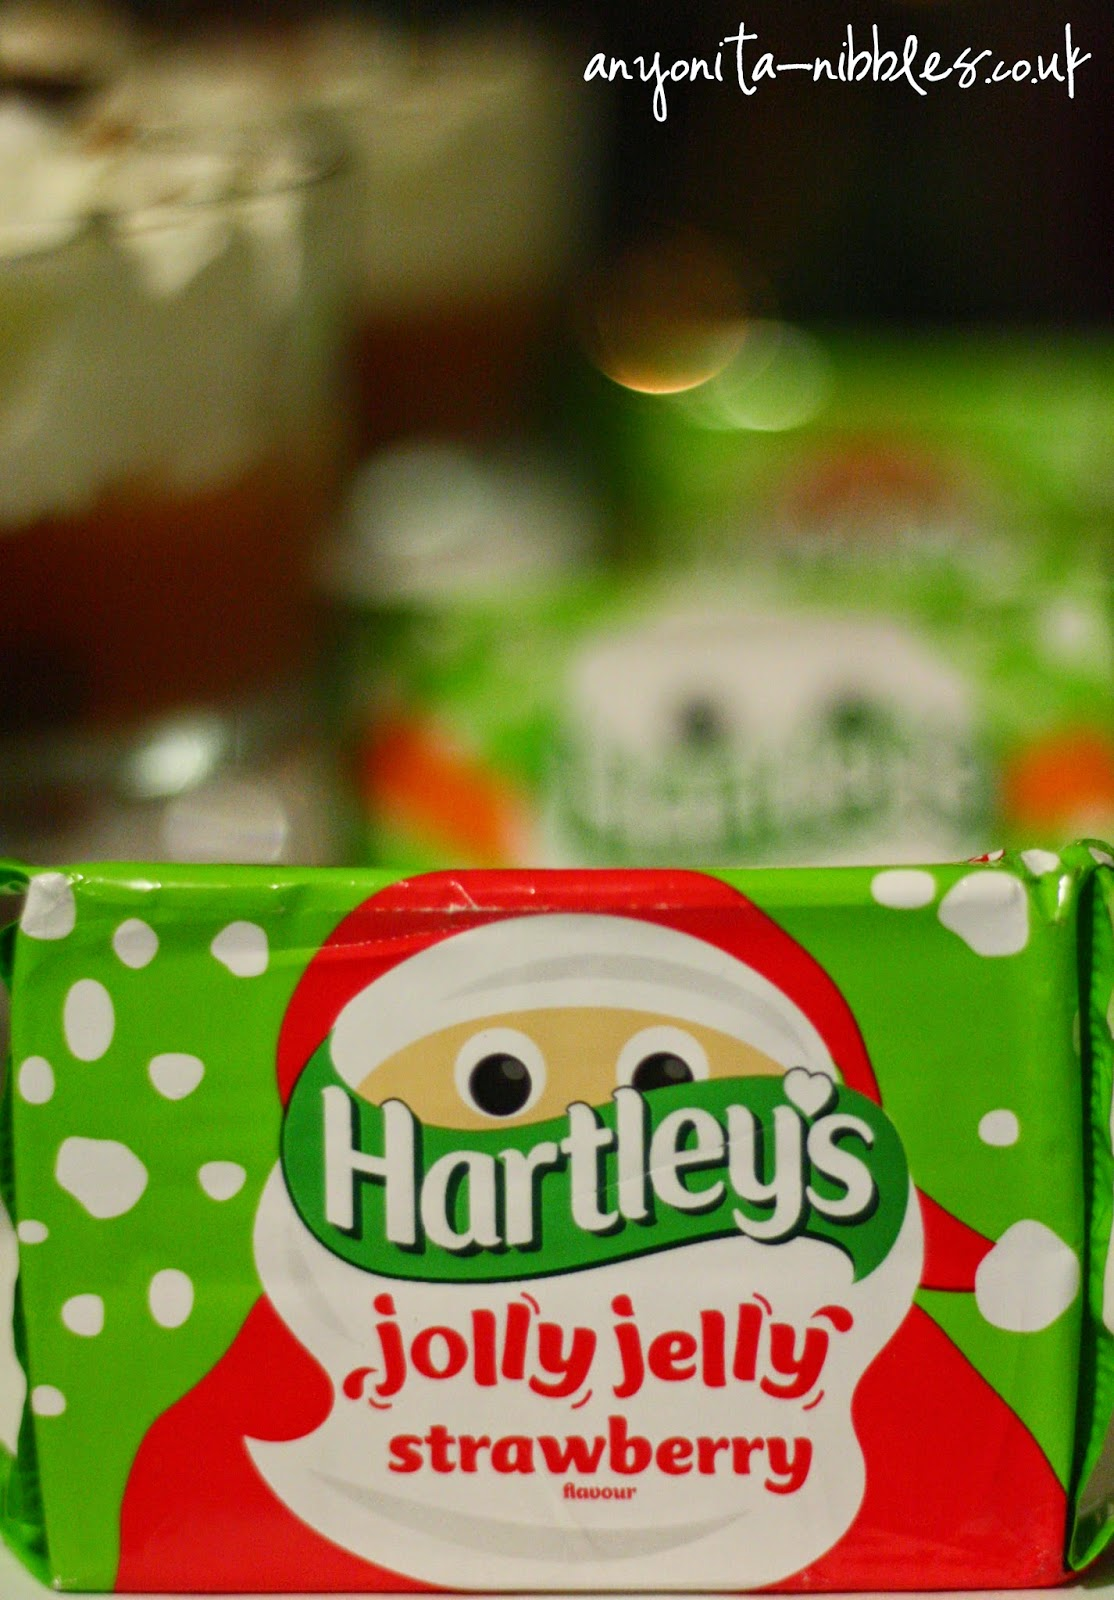 A packet of Hartley's Jolly Jelly dressed for Christmas from Anyonita-Nibbles.co.uk